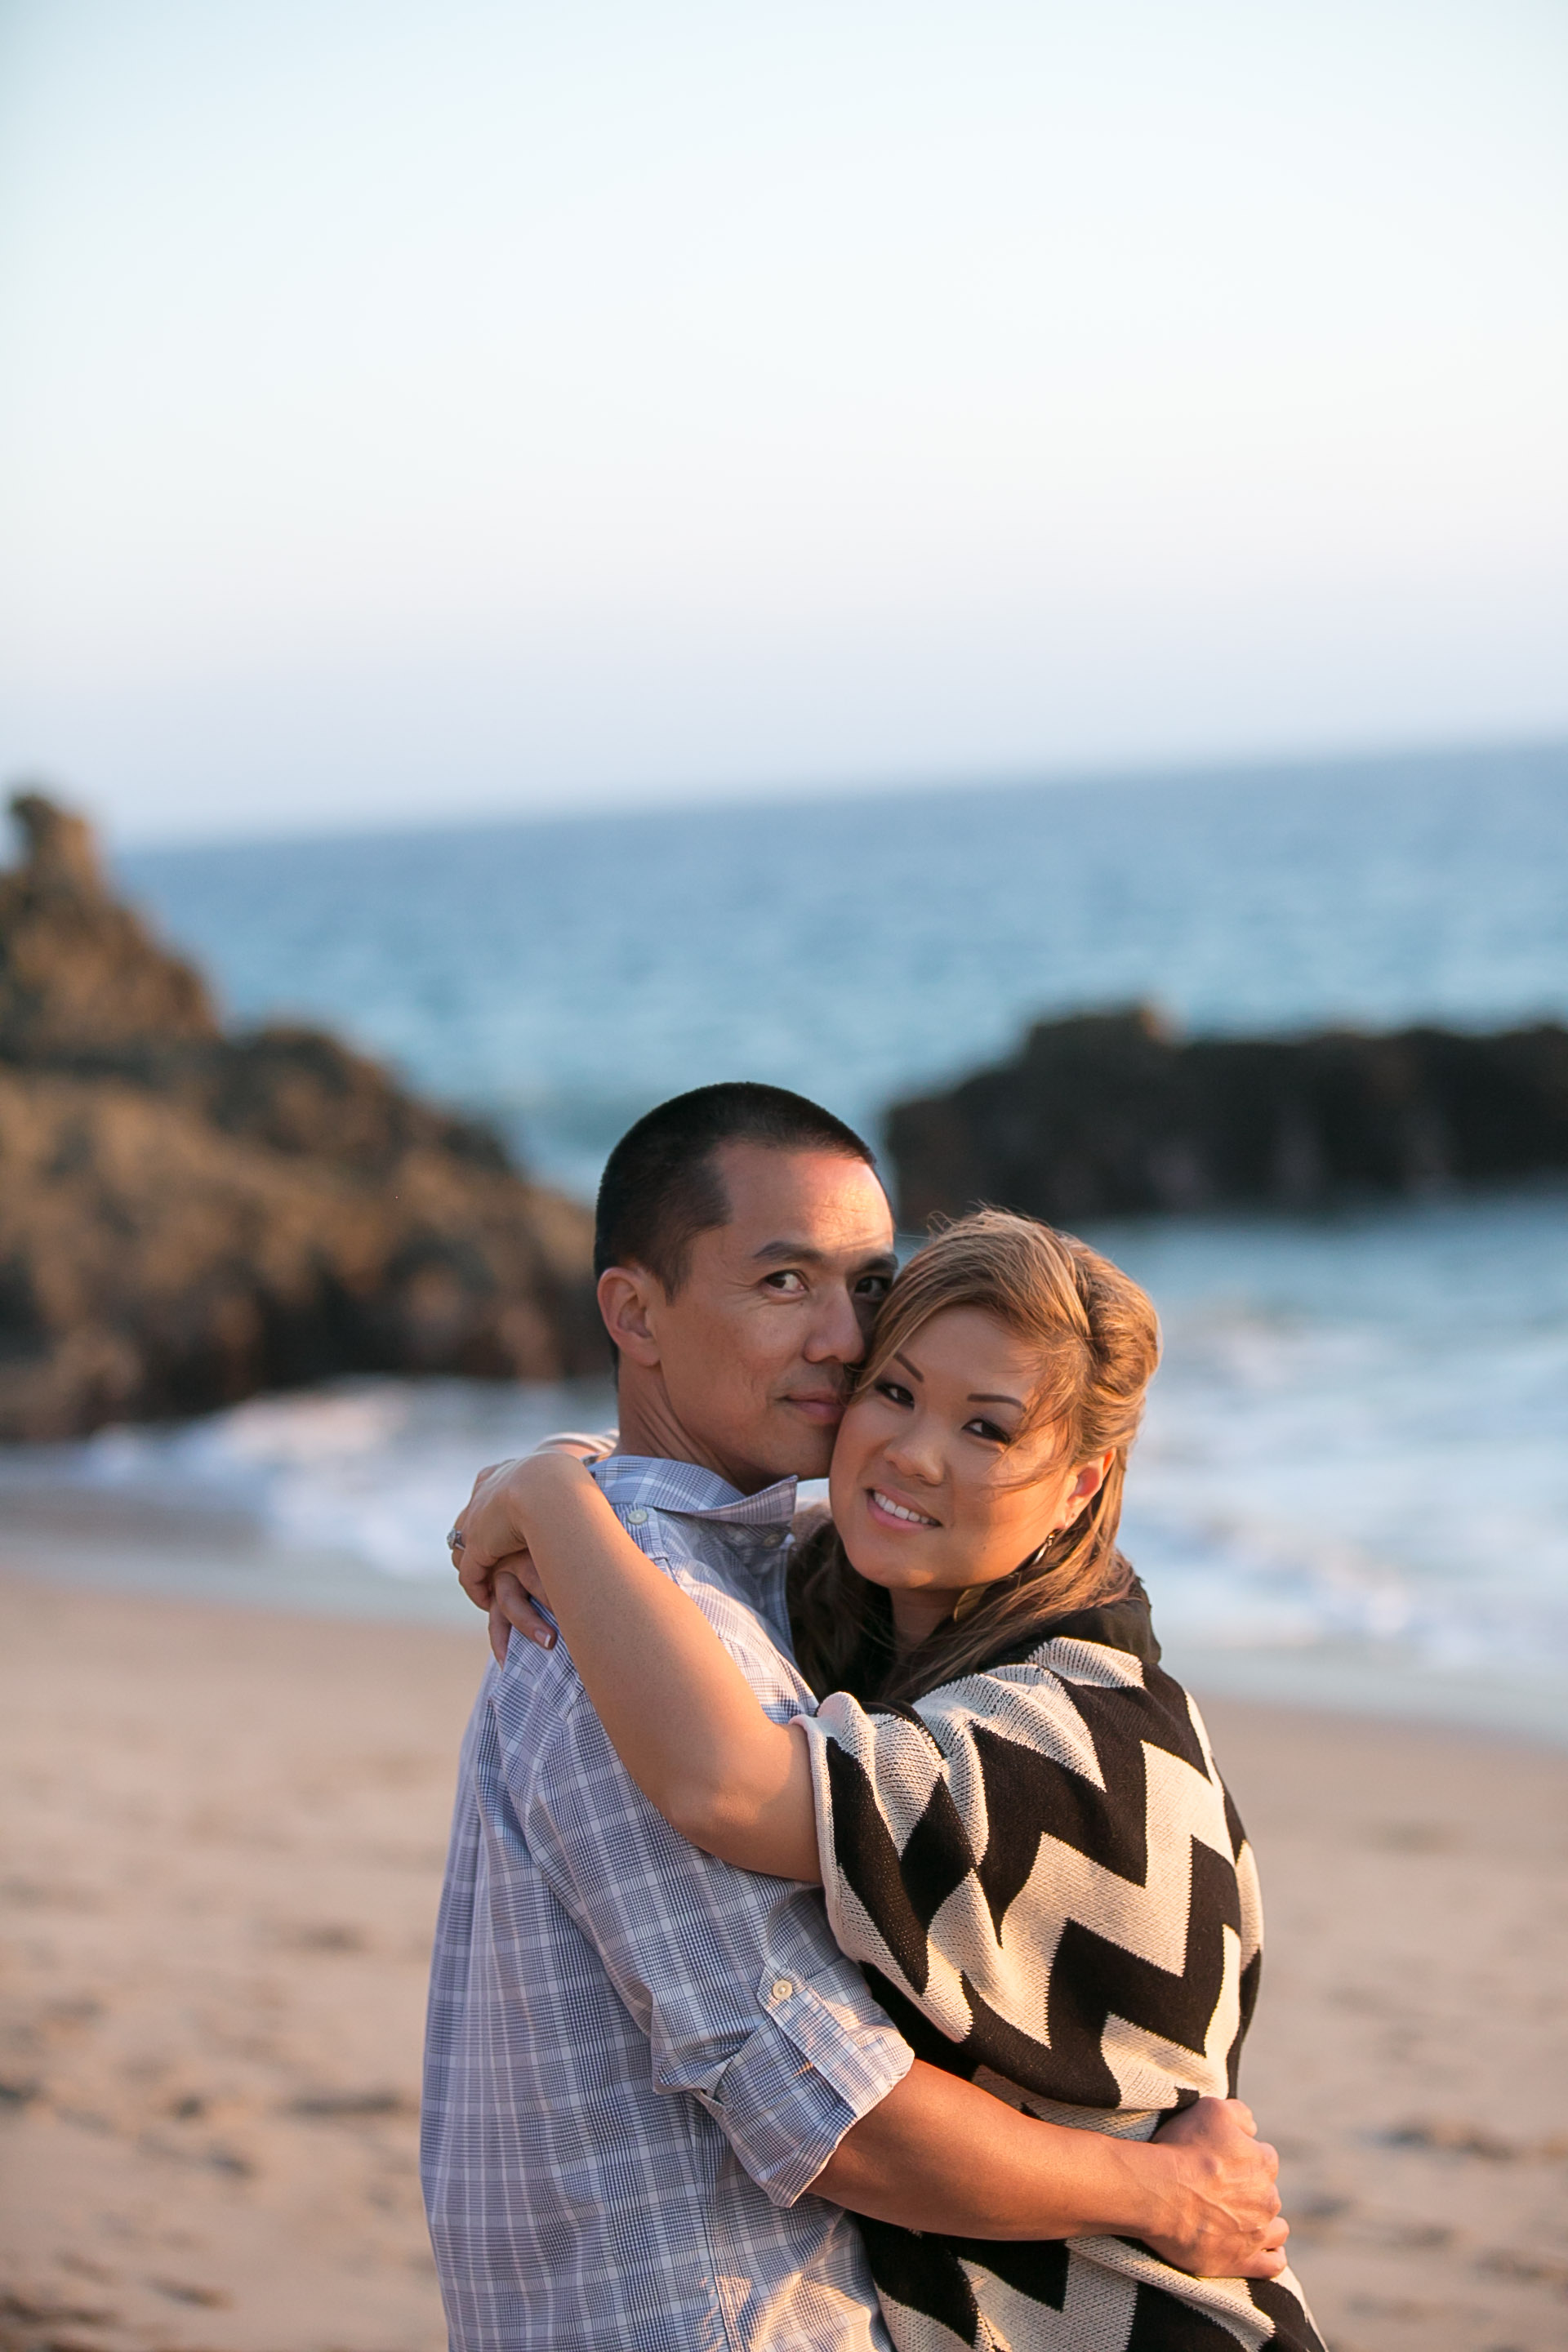 20131020_CHRIS_JEFF_MALIBU_BEACH_ENGAGEMENT_CHRIS_HOLT_PHOTOGRAPHY_010.jpg